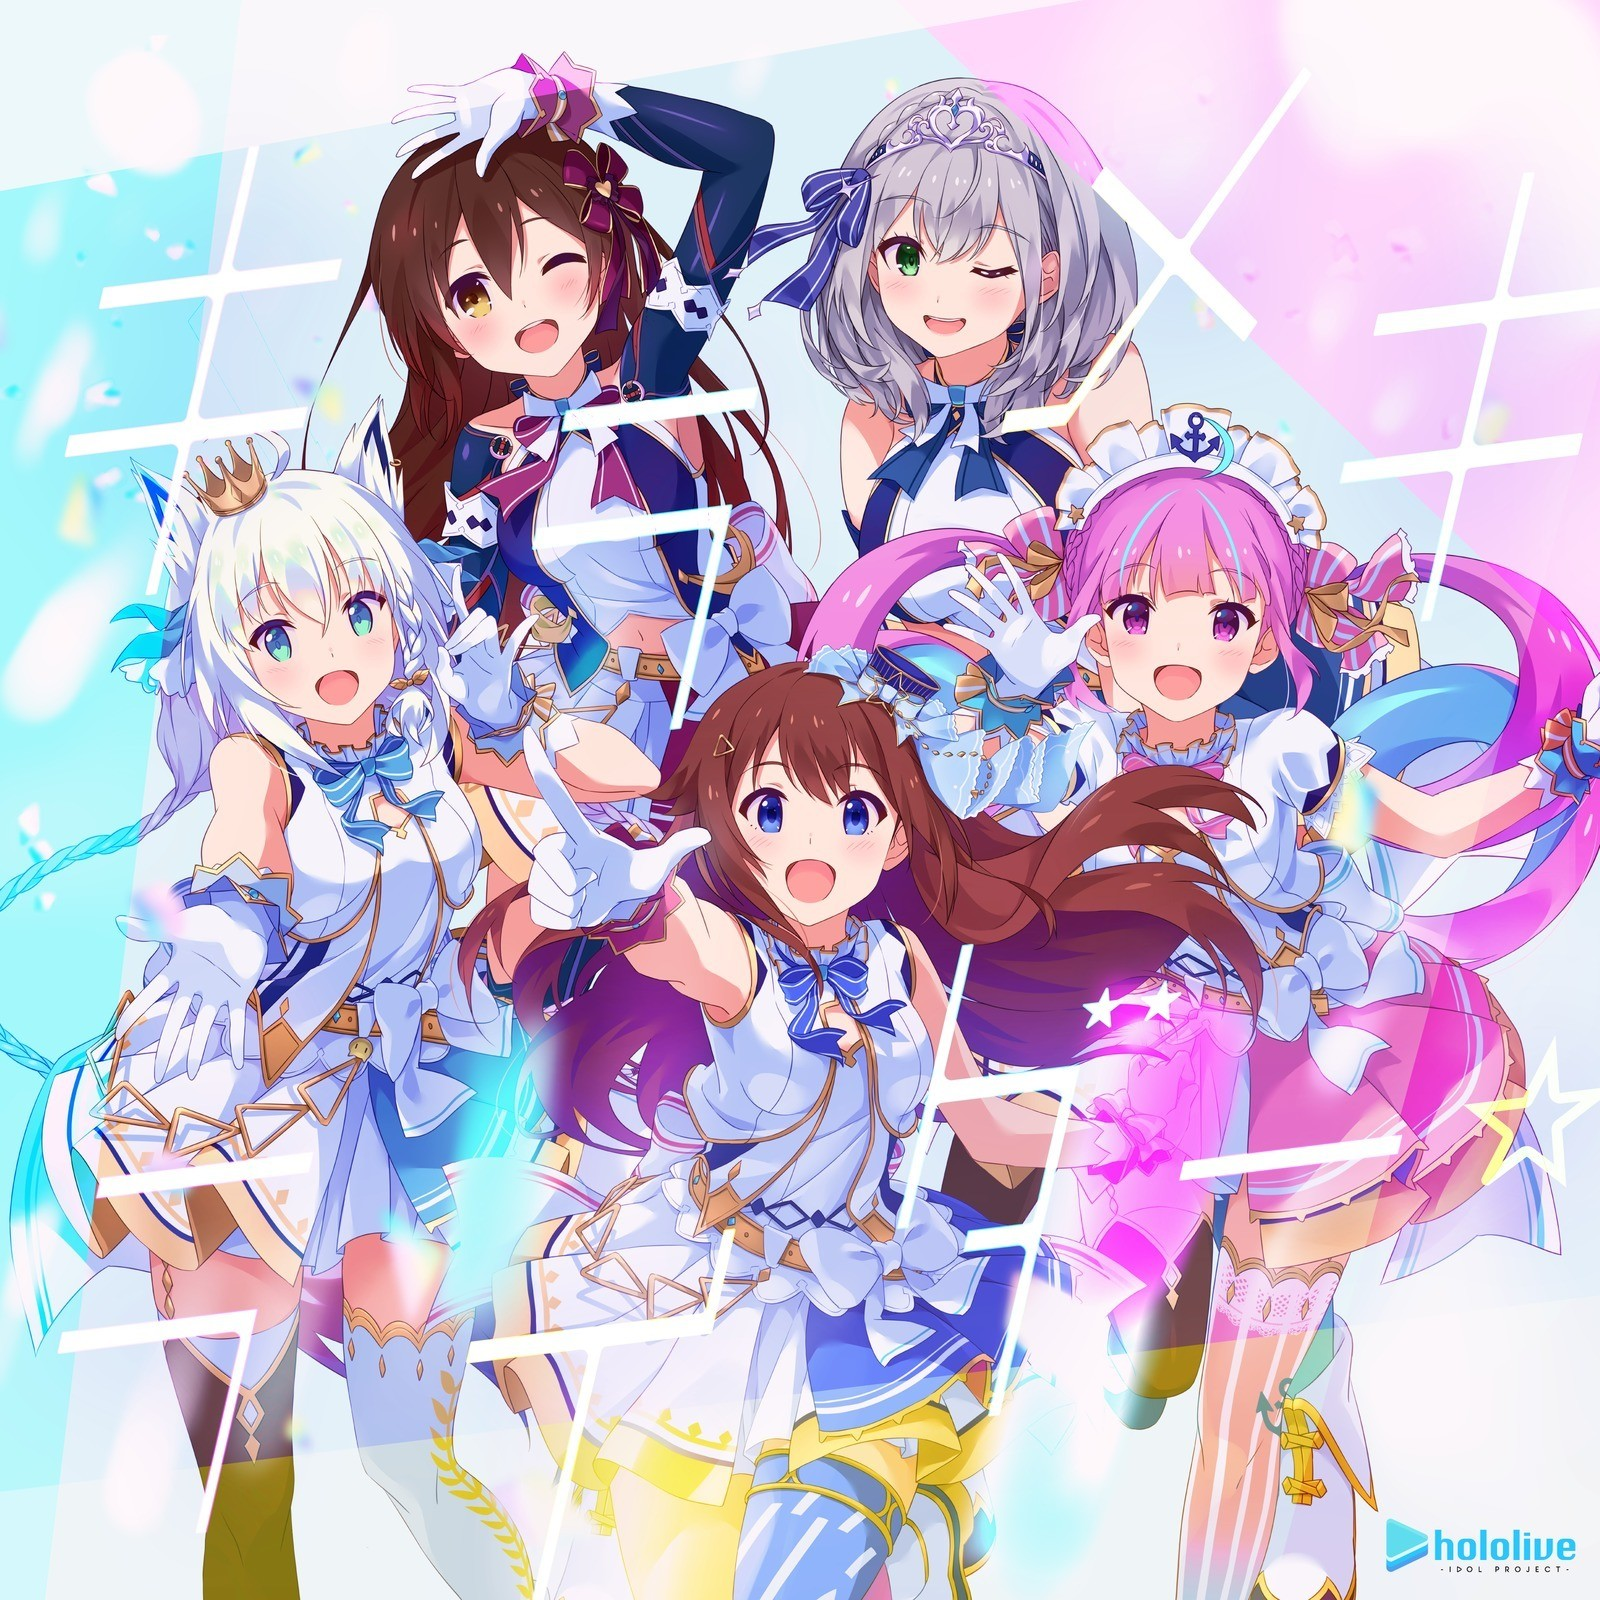 [Single] hololive IDOL PROJECT – キラメキライダー☆ [2020.02.24]